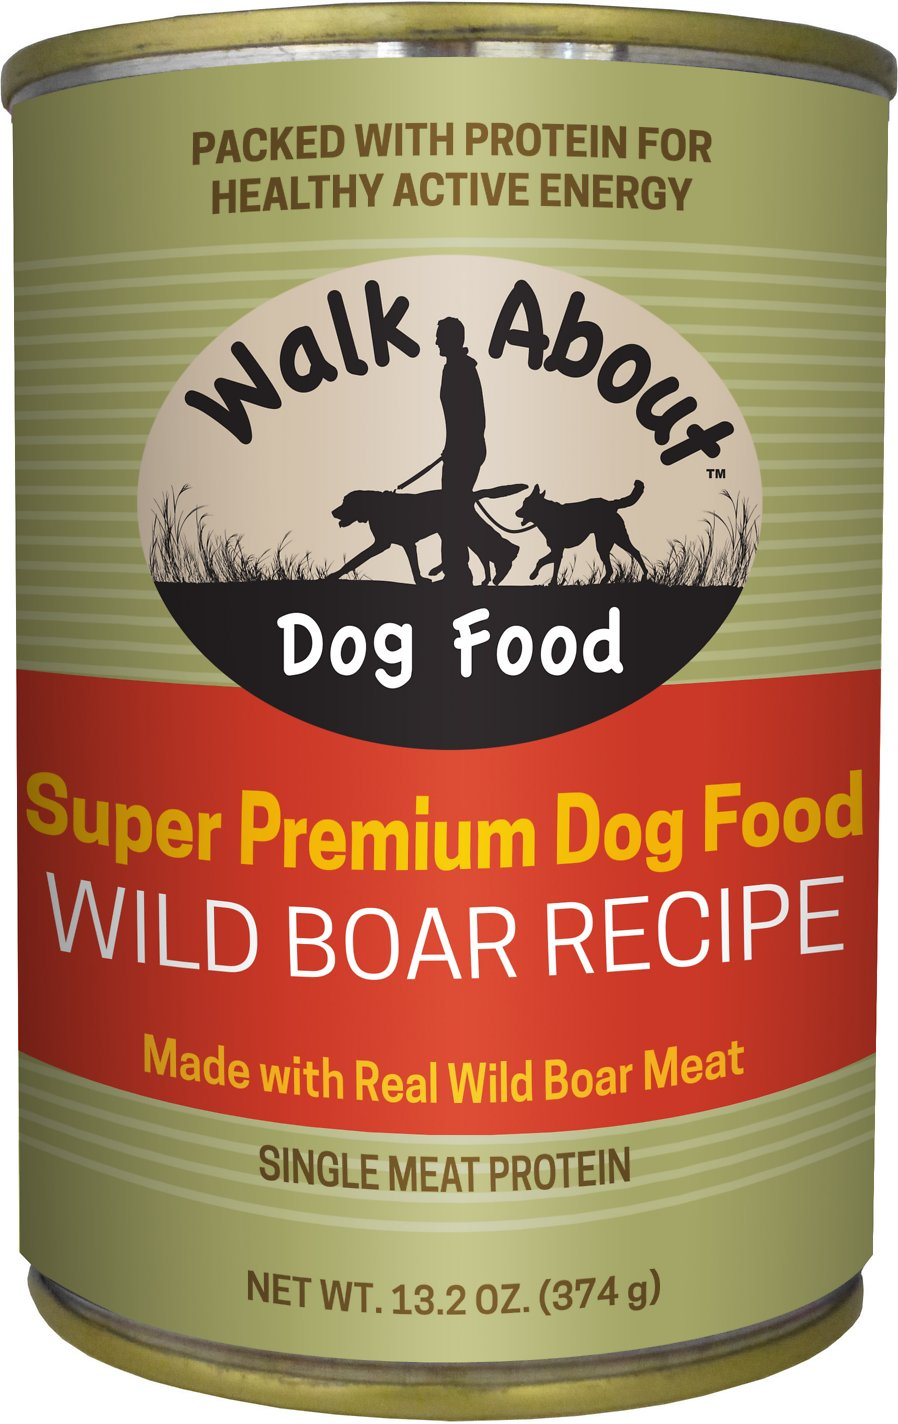 Walk About Grain-Free Wild Boar Recipe, Steamed Vegetables & Rosemary Canned Dog Food Image